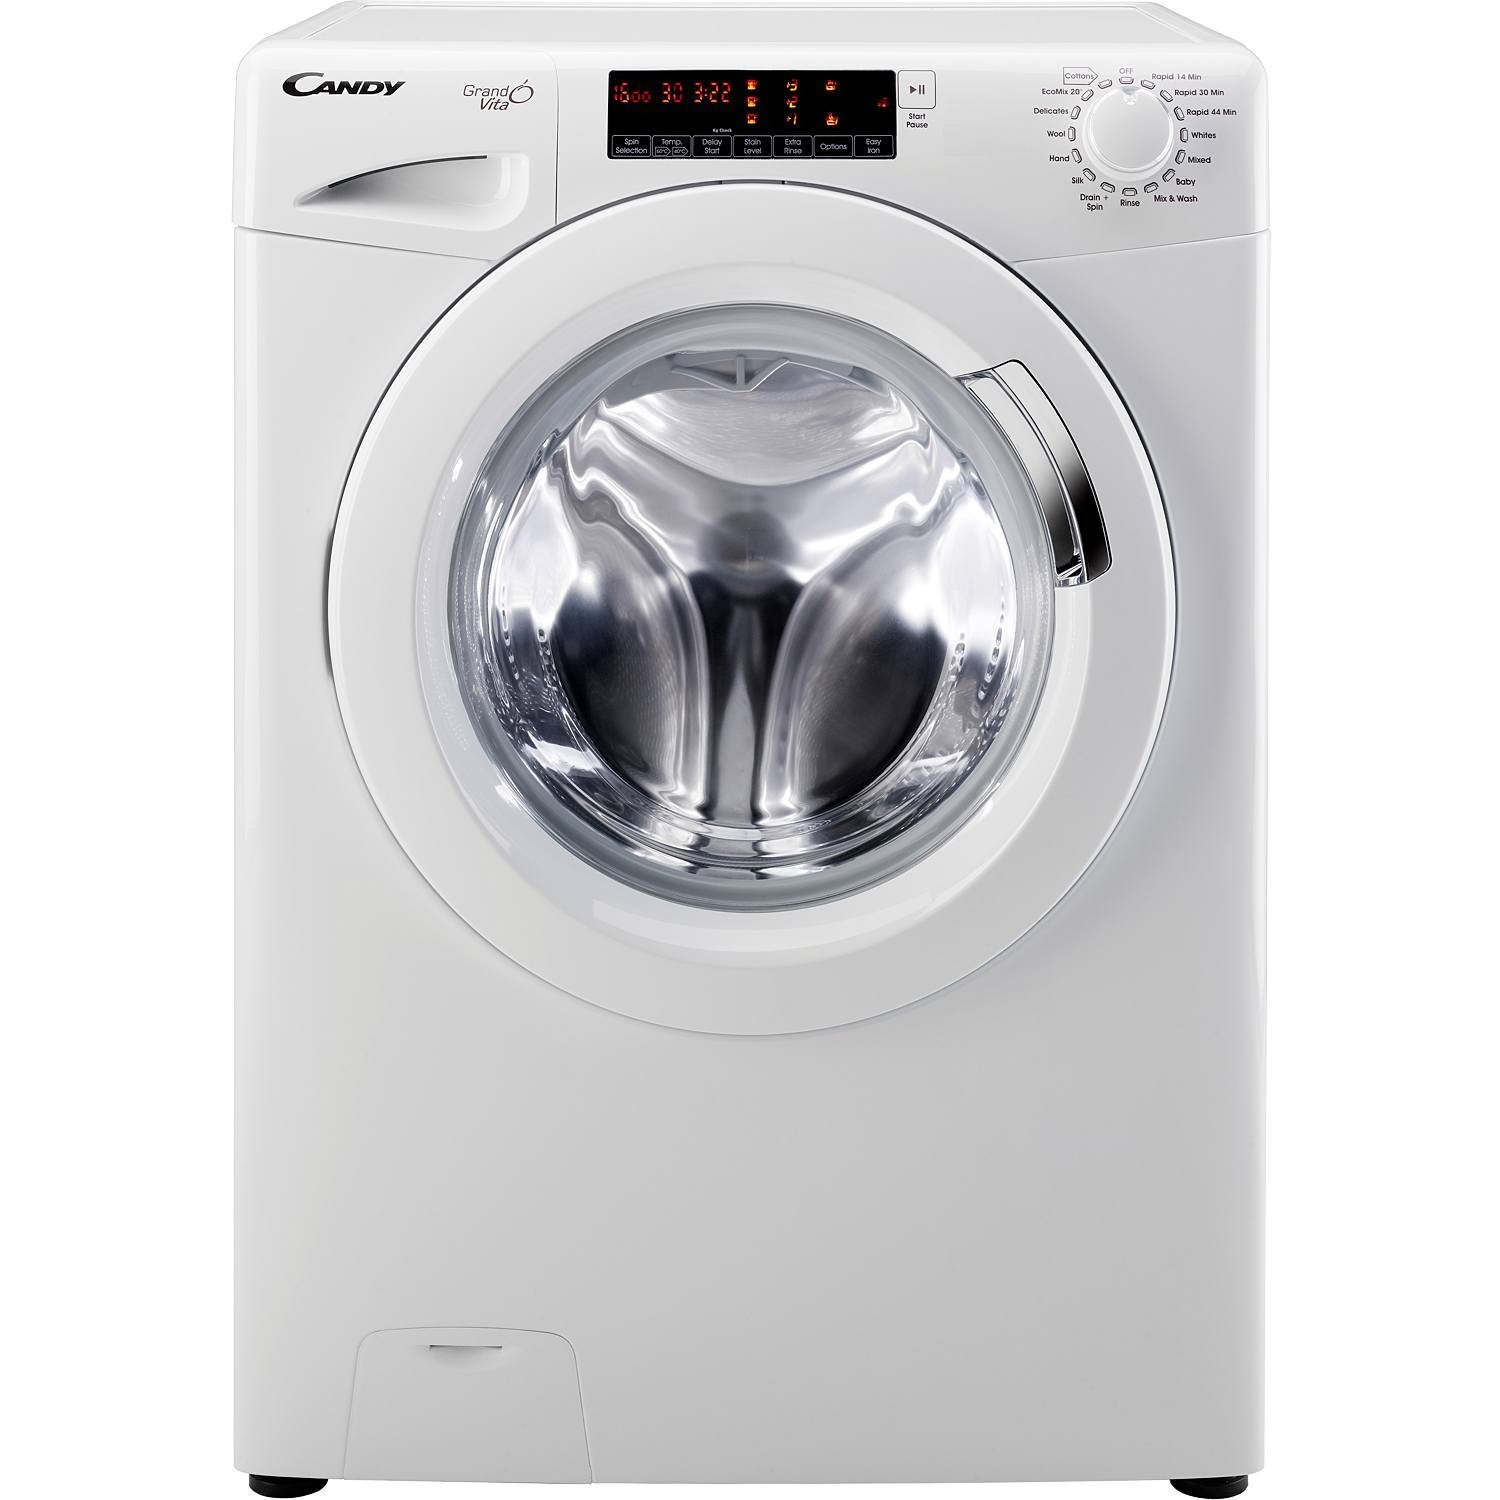 CANDY GV168T3W A+++ Rated 8Kg 1600 Spin 16 Programmes Washing Machine in  White: Amazon.co.uk: Kitchen & Home